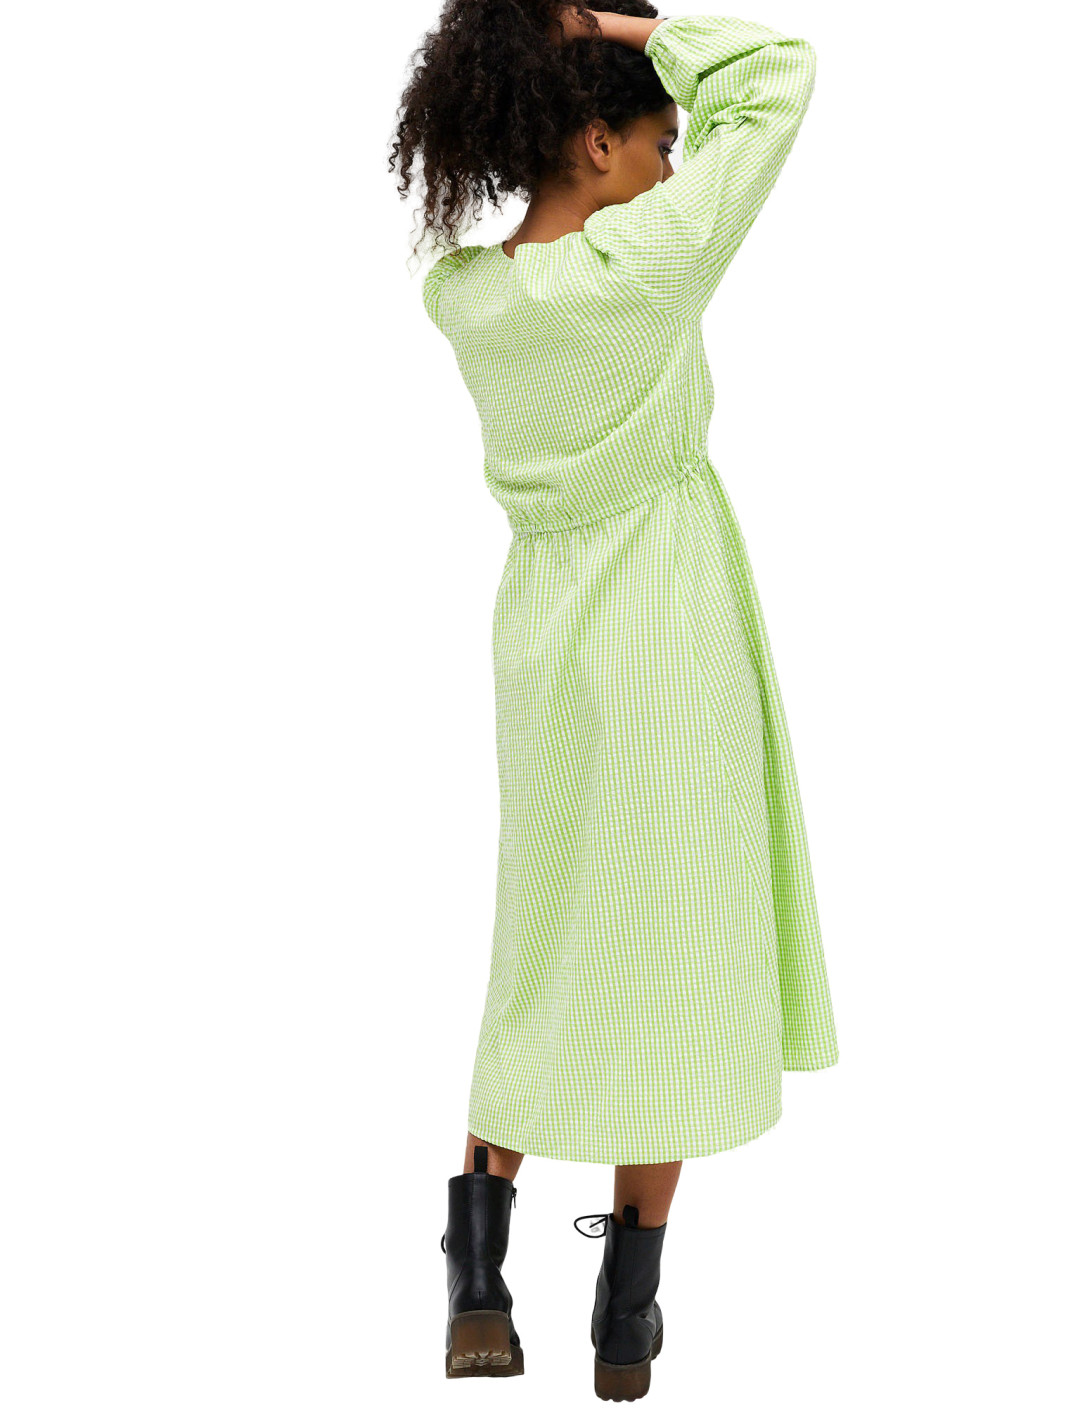 Mallan Green Smock Dress